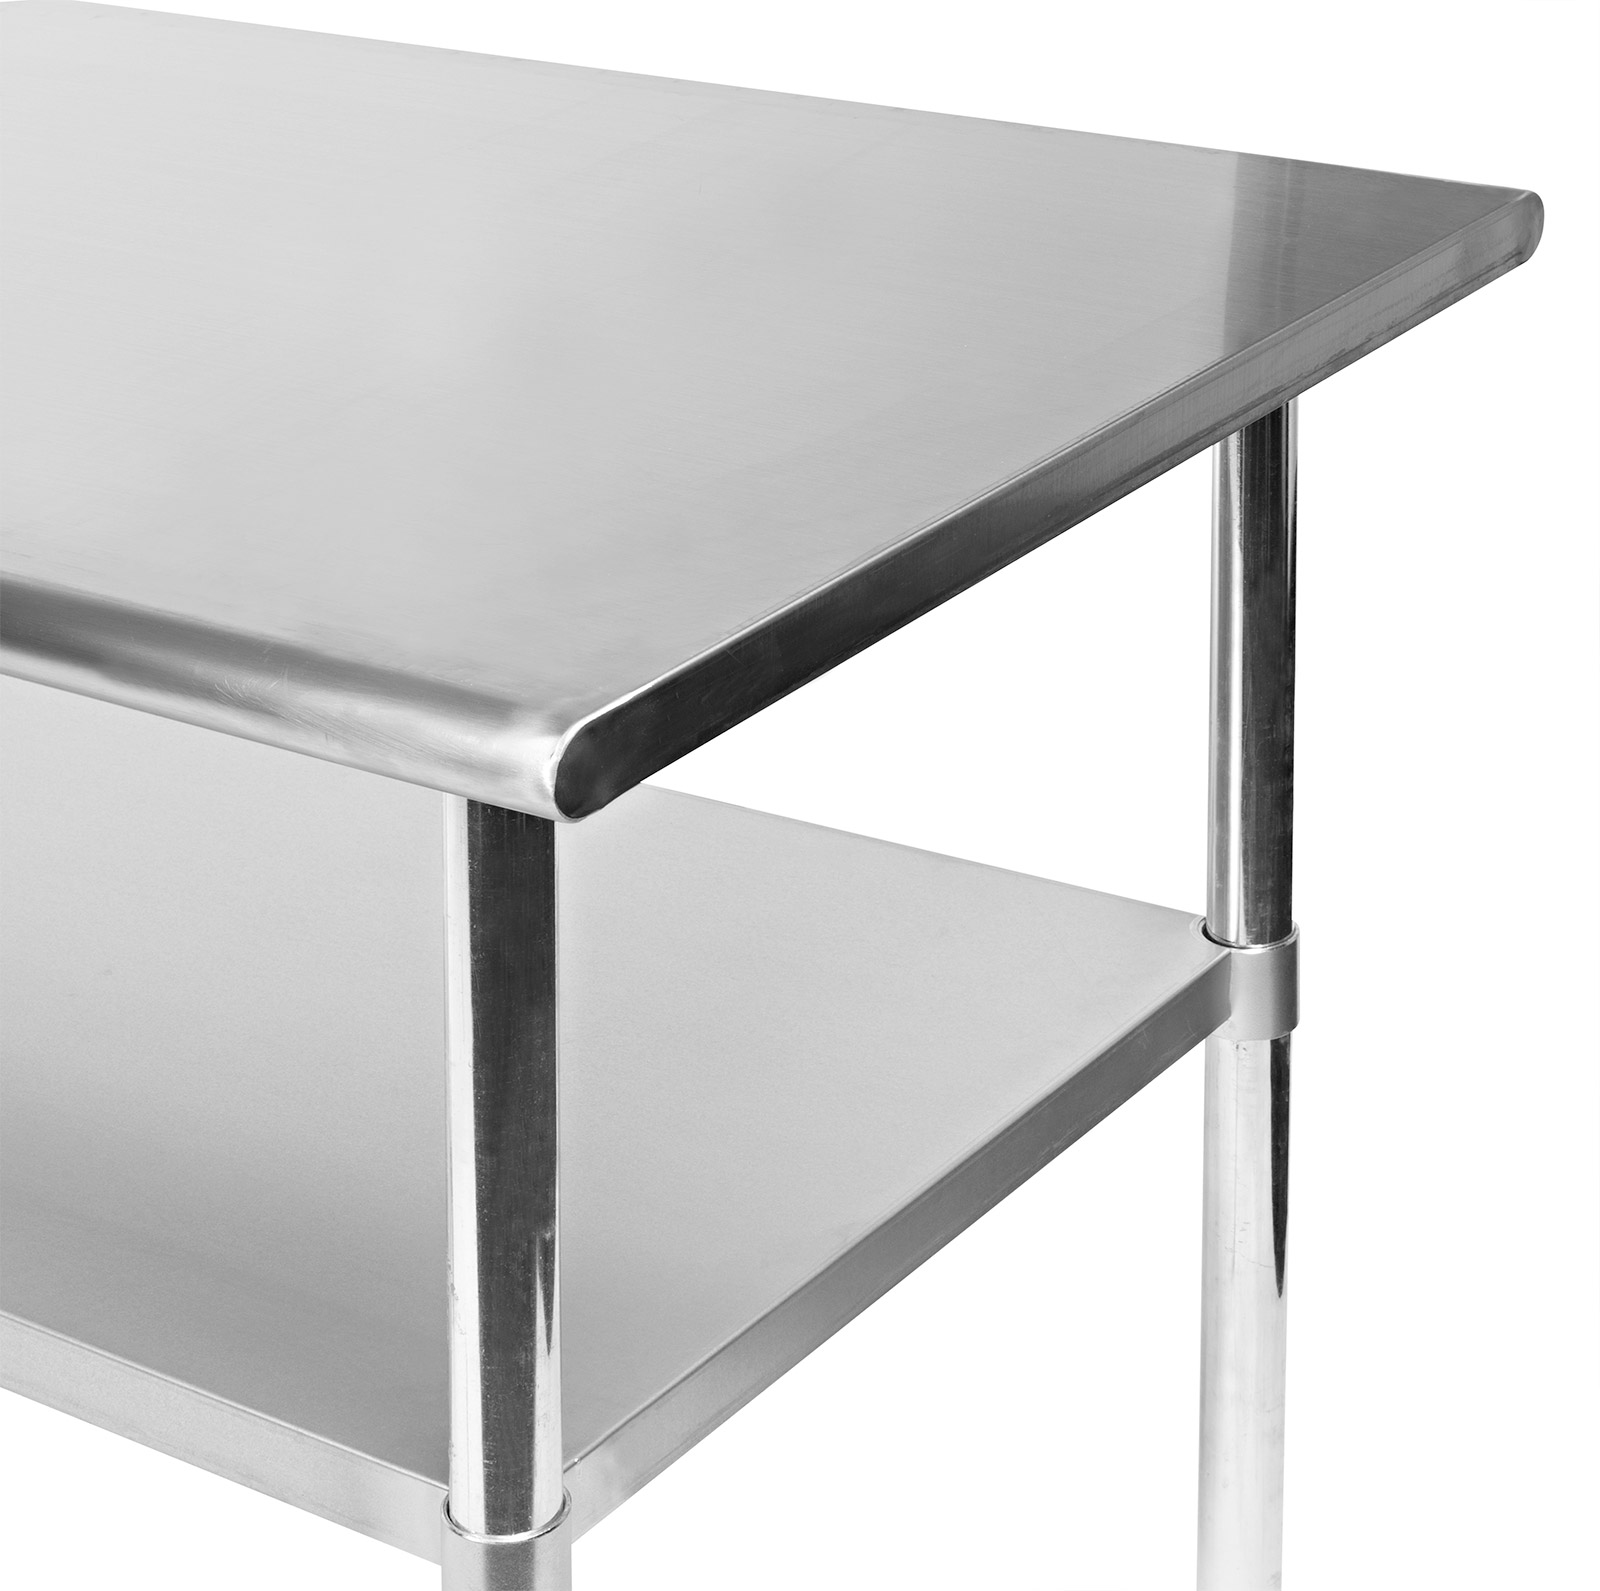 Gridmann NSF Stainless Steel Commercial Kitchen Prep & Work Table ...